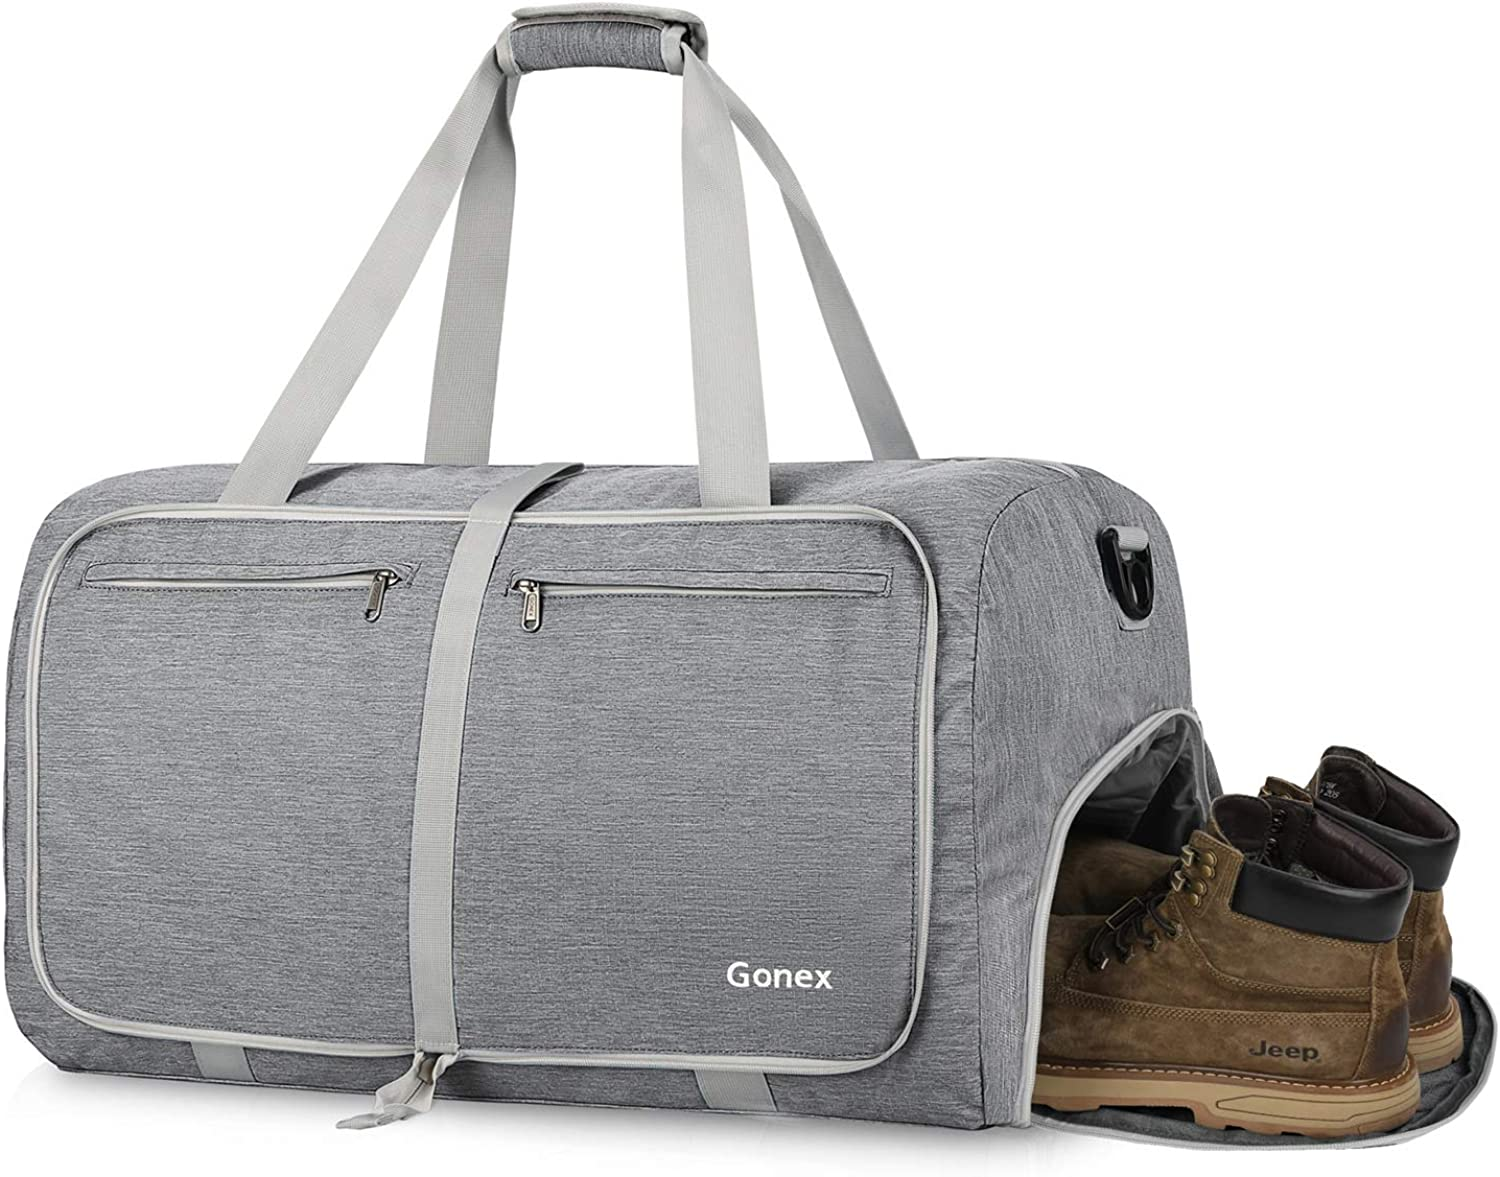 Gonex Travel Duffel Bag Gym Bag Workout Bags with Shoe Compartment, 65L Foldable Sports Duffle Carry On Bag Weekender Bag for Gym Shopping Home Storage